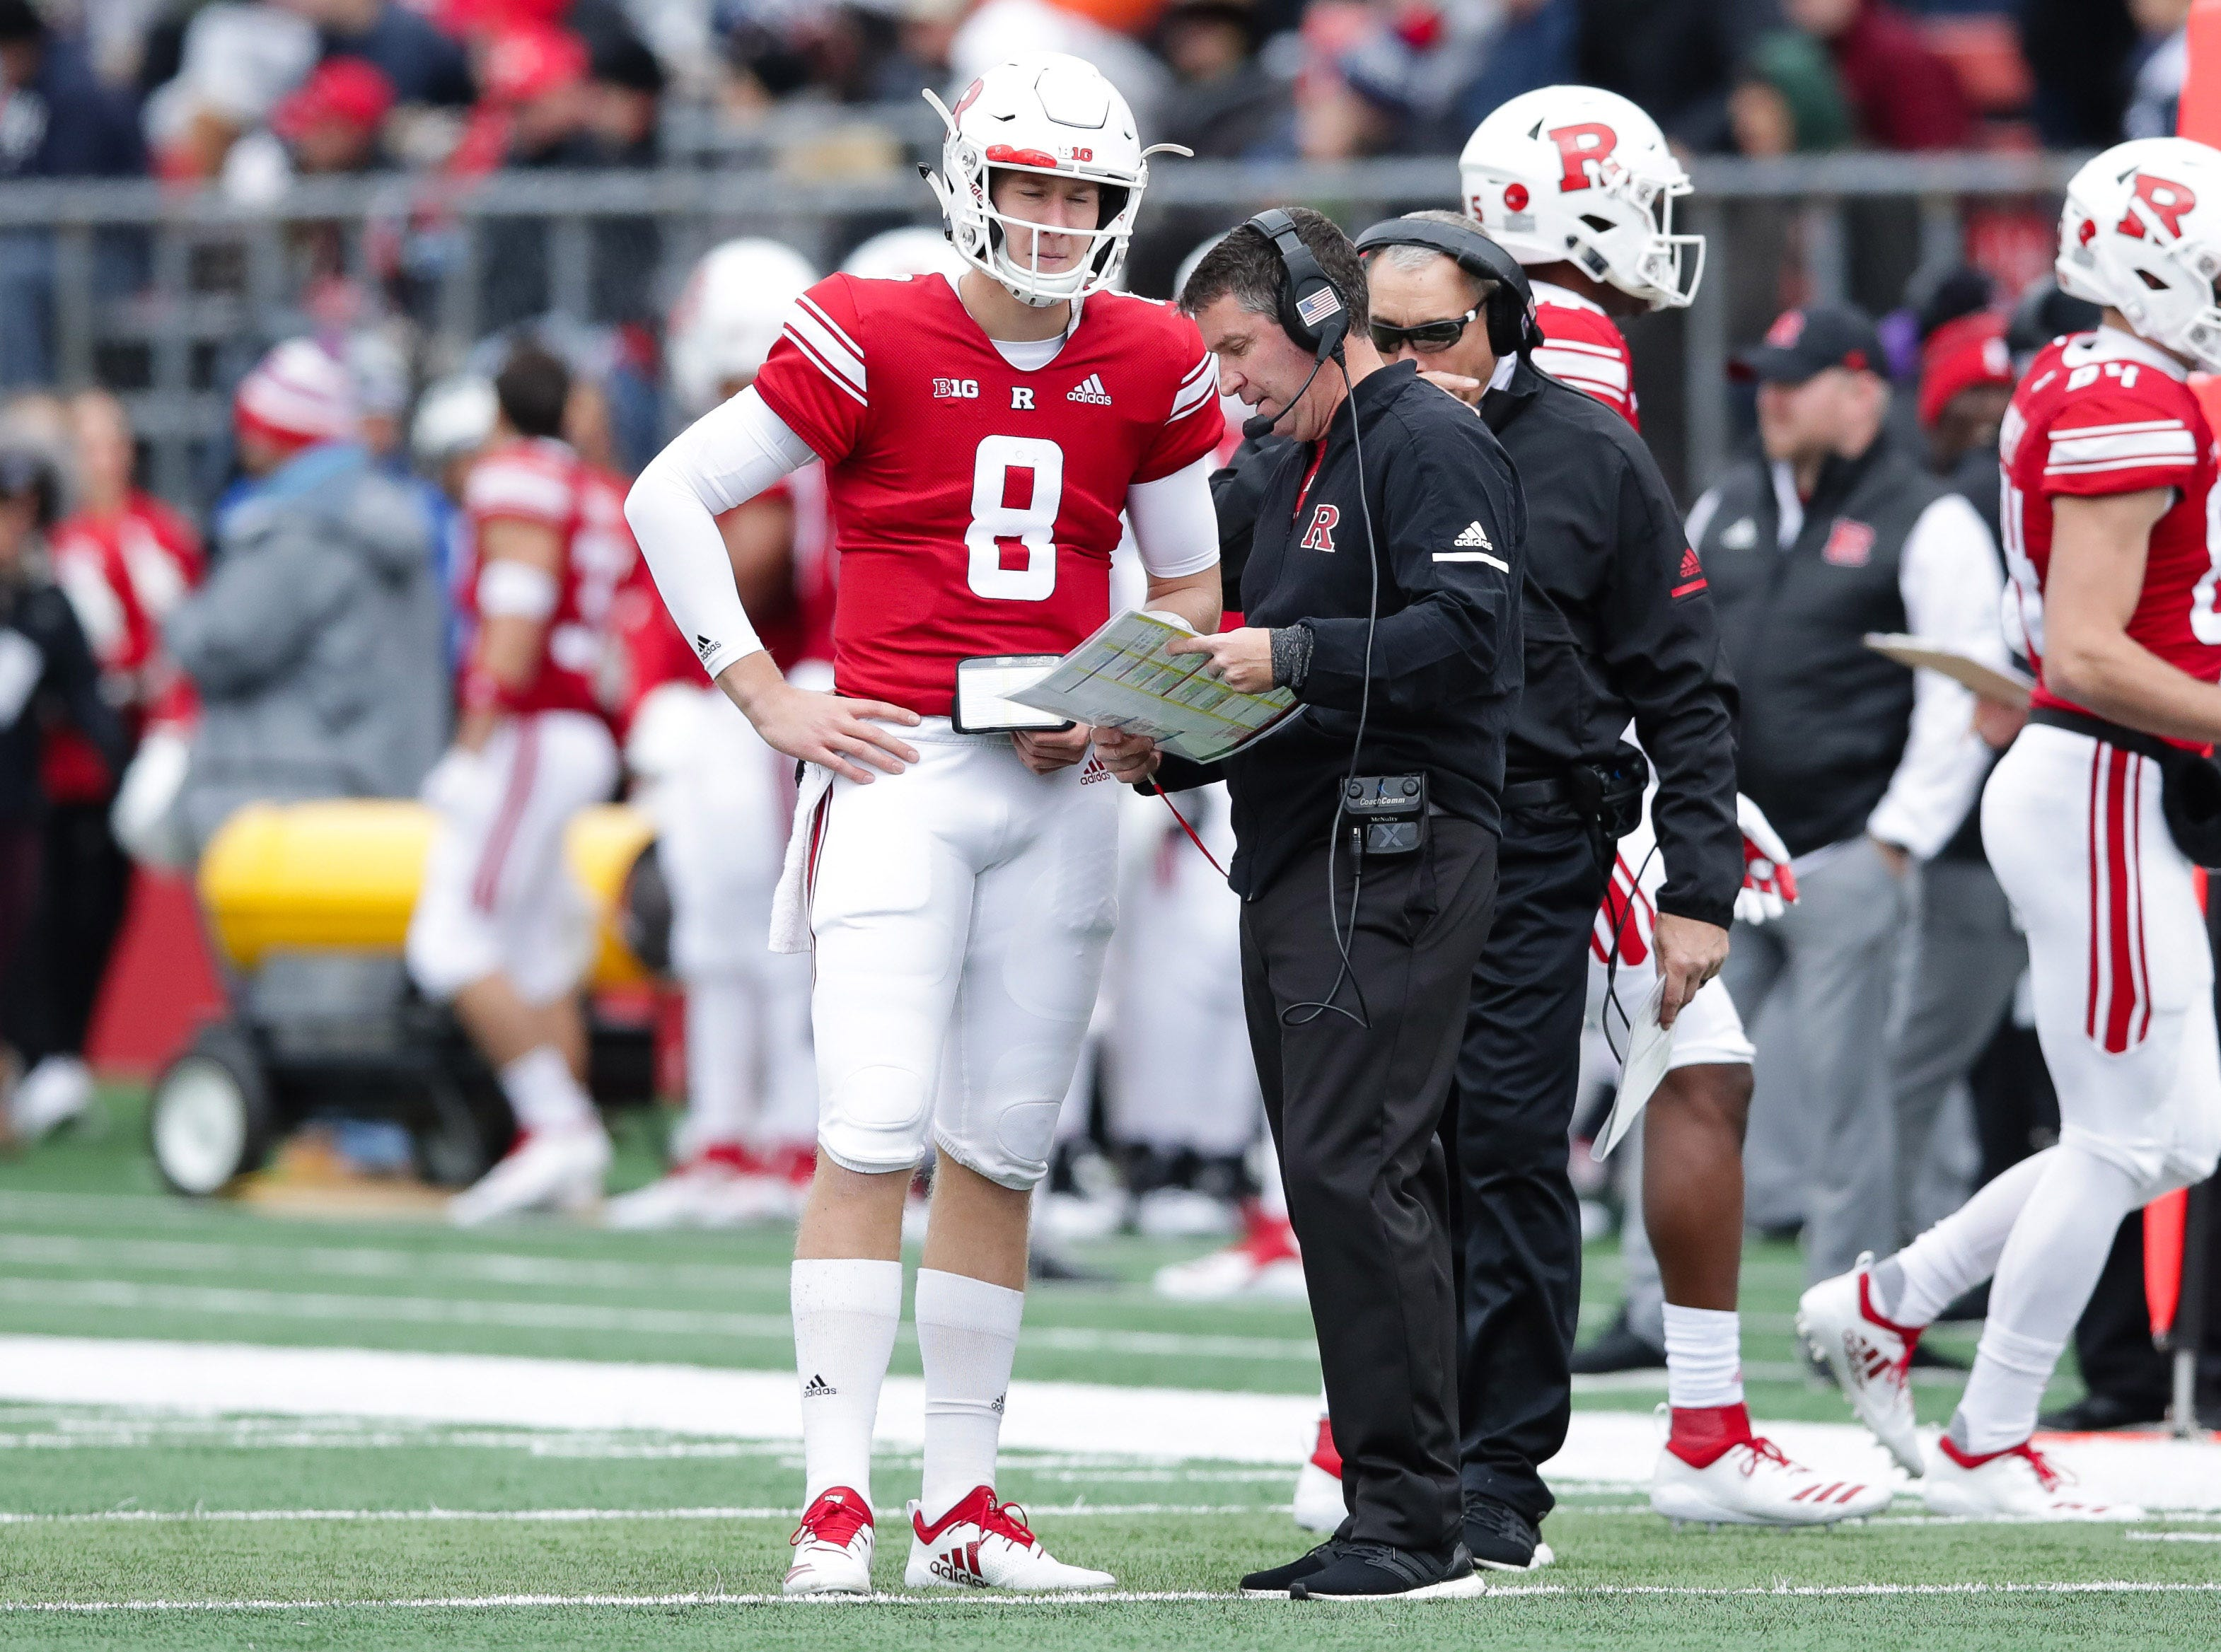 Rutgers football: Five takeaways, five quotes from Rutgers' 20-7 loss to Penn State